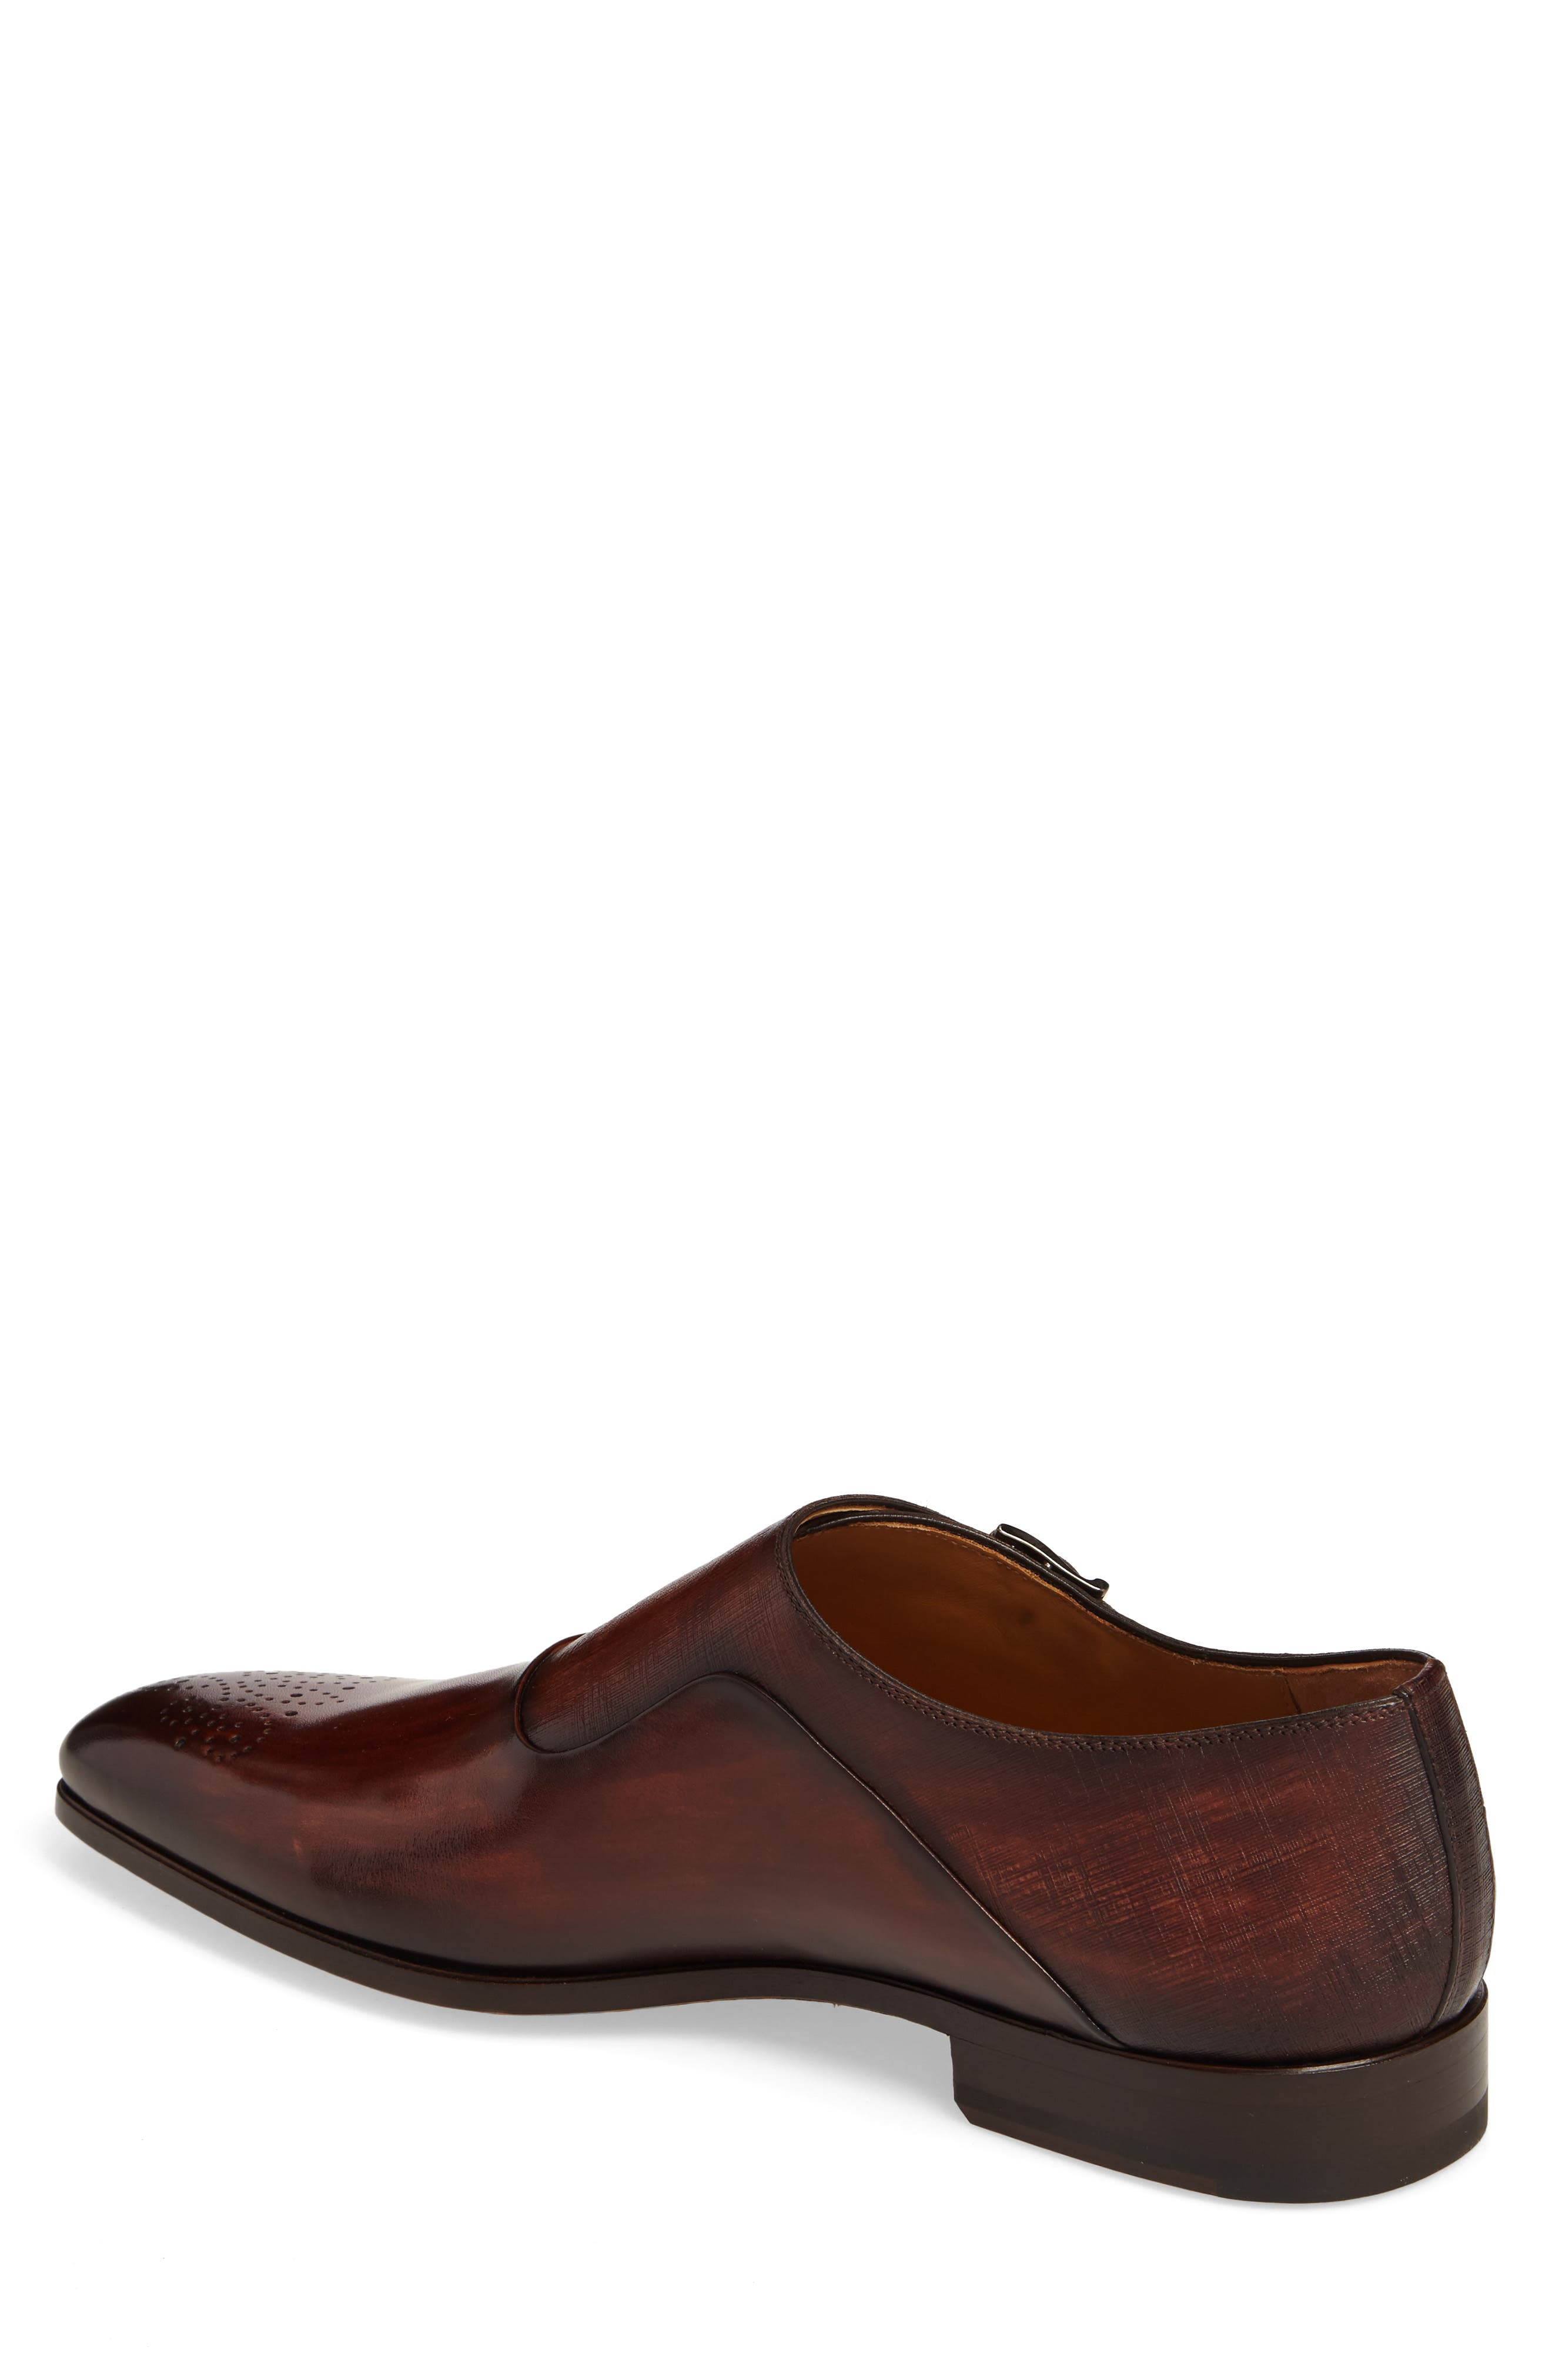 Alternate Image 2  - Magnanni Saburo Monk Strap Shoe (Men)